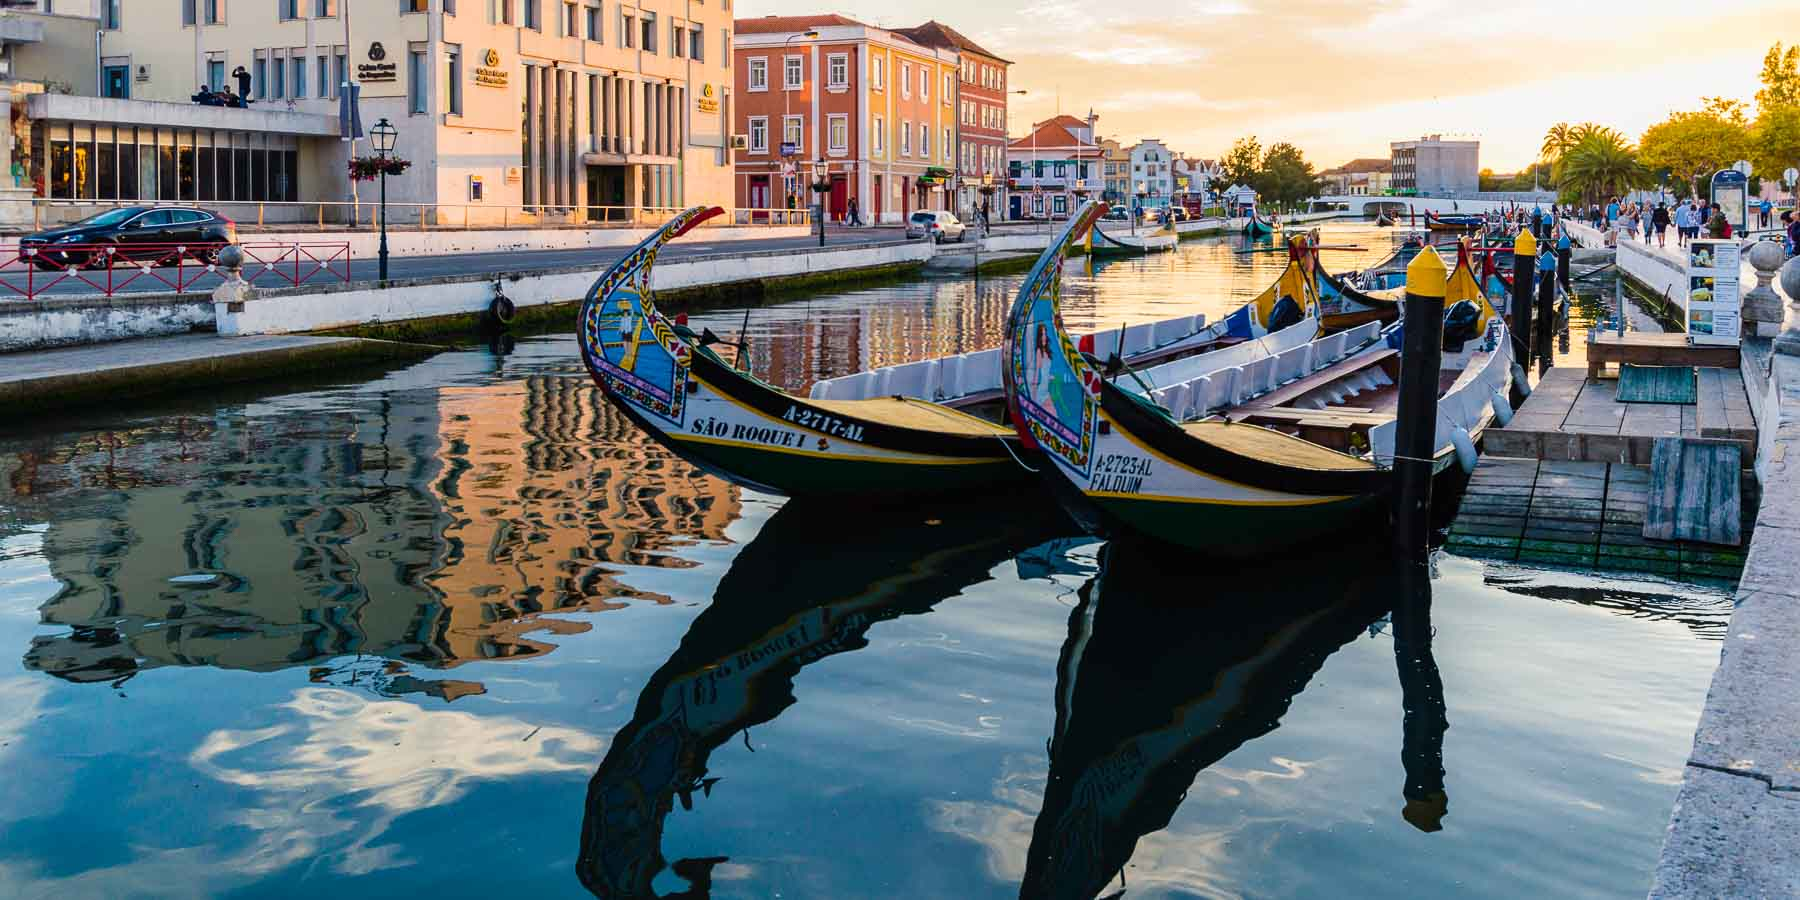 Gondolas on the canal in the town of Aveiro.